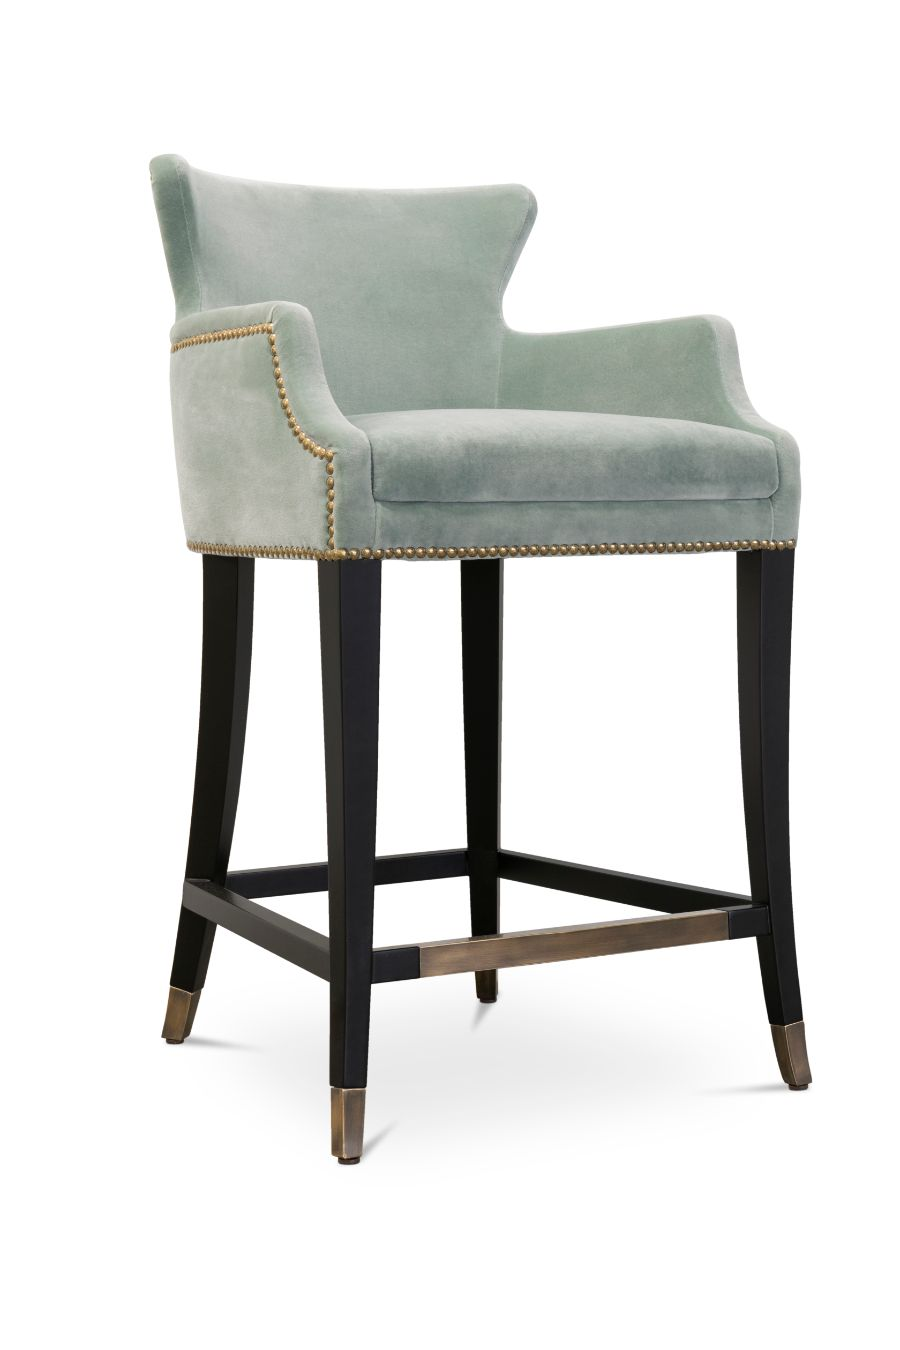 Bar Chairs & Stools That Set Trends Worldwide: 25 Fierce Trend Setters bar chairs Bar Chairs & Stools That Set Trends Worldwide: 25 Fierce Trend Setters Bar Chairs Stools That Set Trends Worldwide 25 Fierce Trend Setters 1